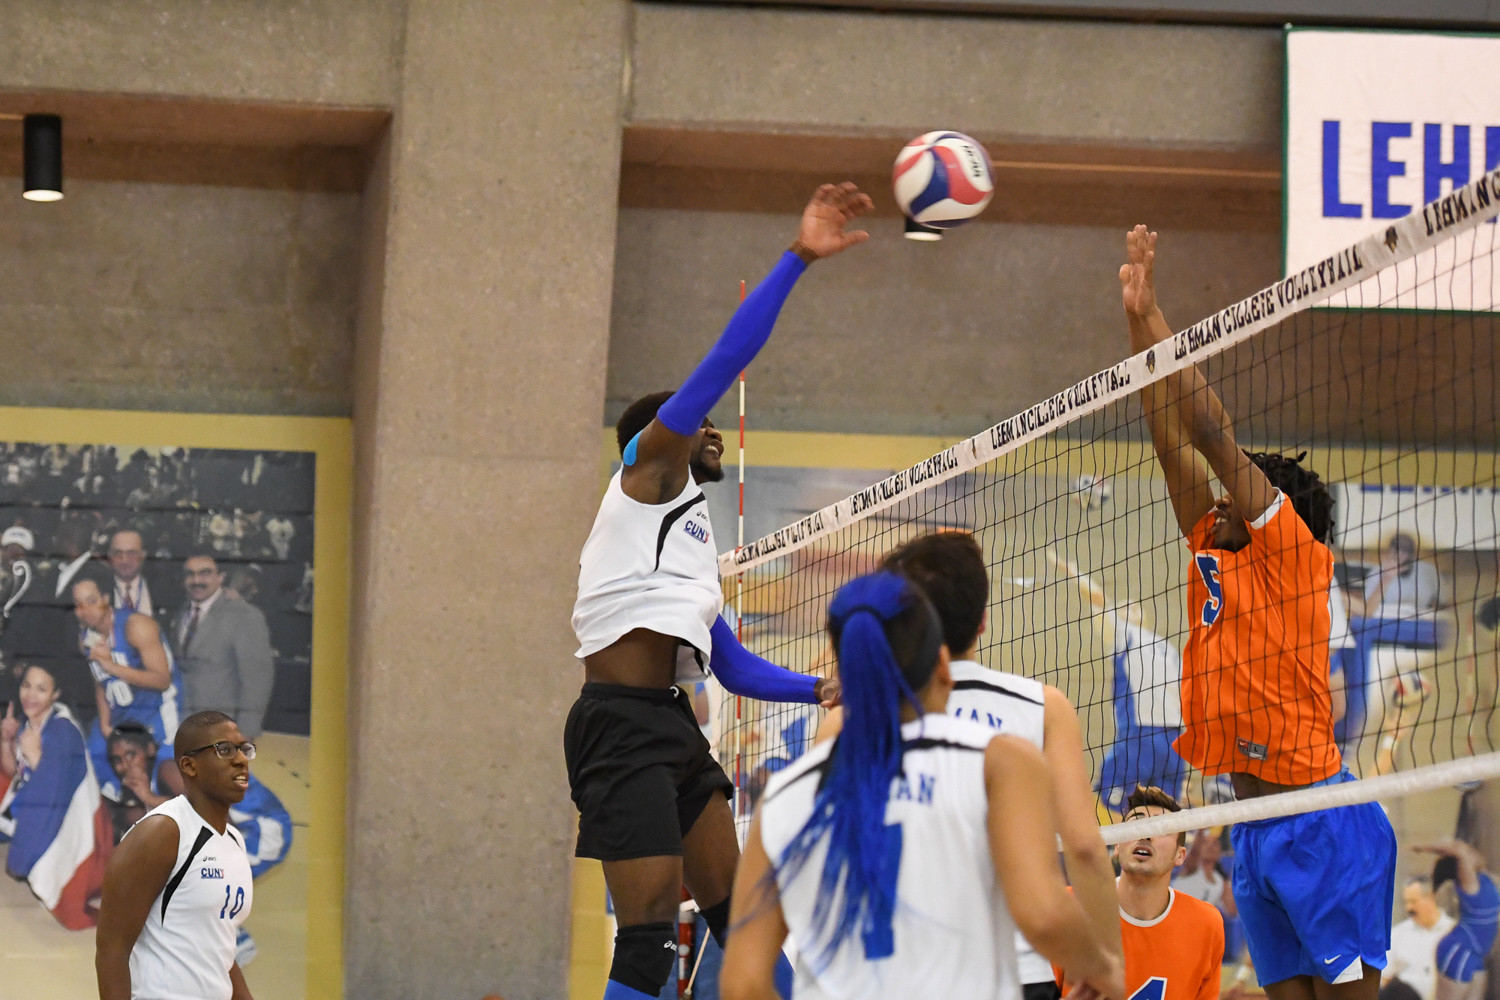 Lehman junior Yaw Eshun, shown here in a match earlier this season, logged 14 digs in a close loss to Baruch.